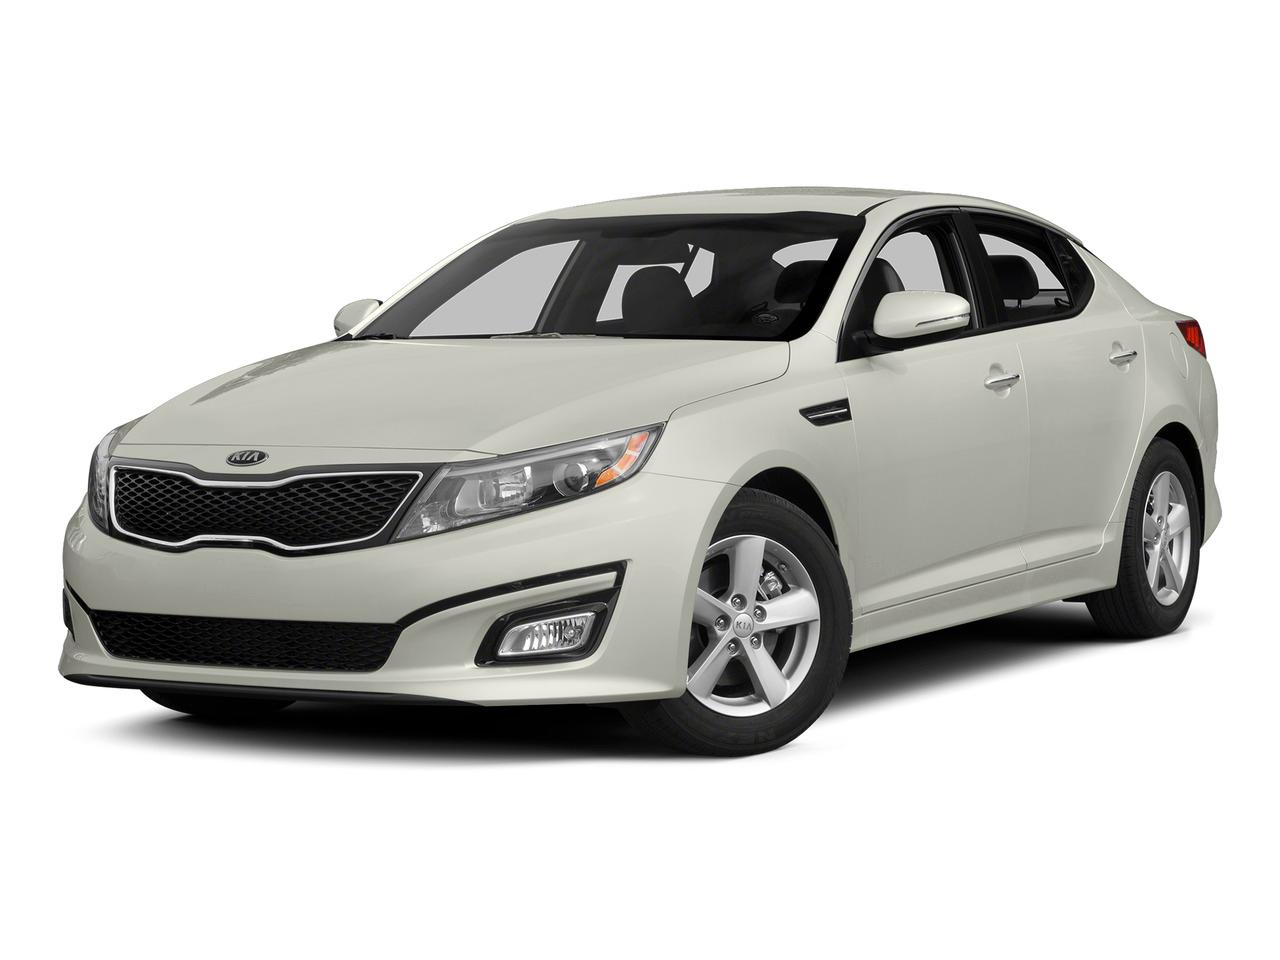 2015 Kia Optima Vehicle Photo in Tucson, AZ 85712